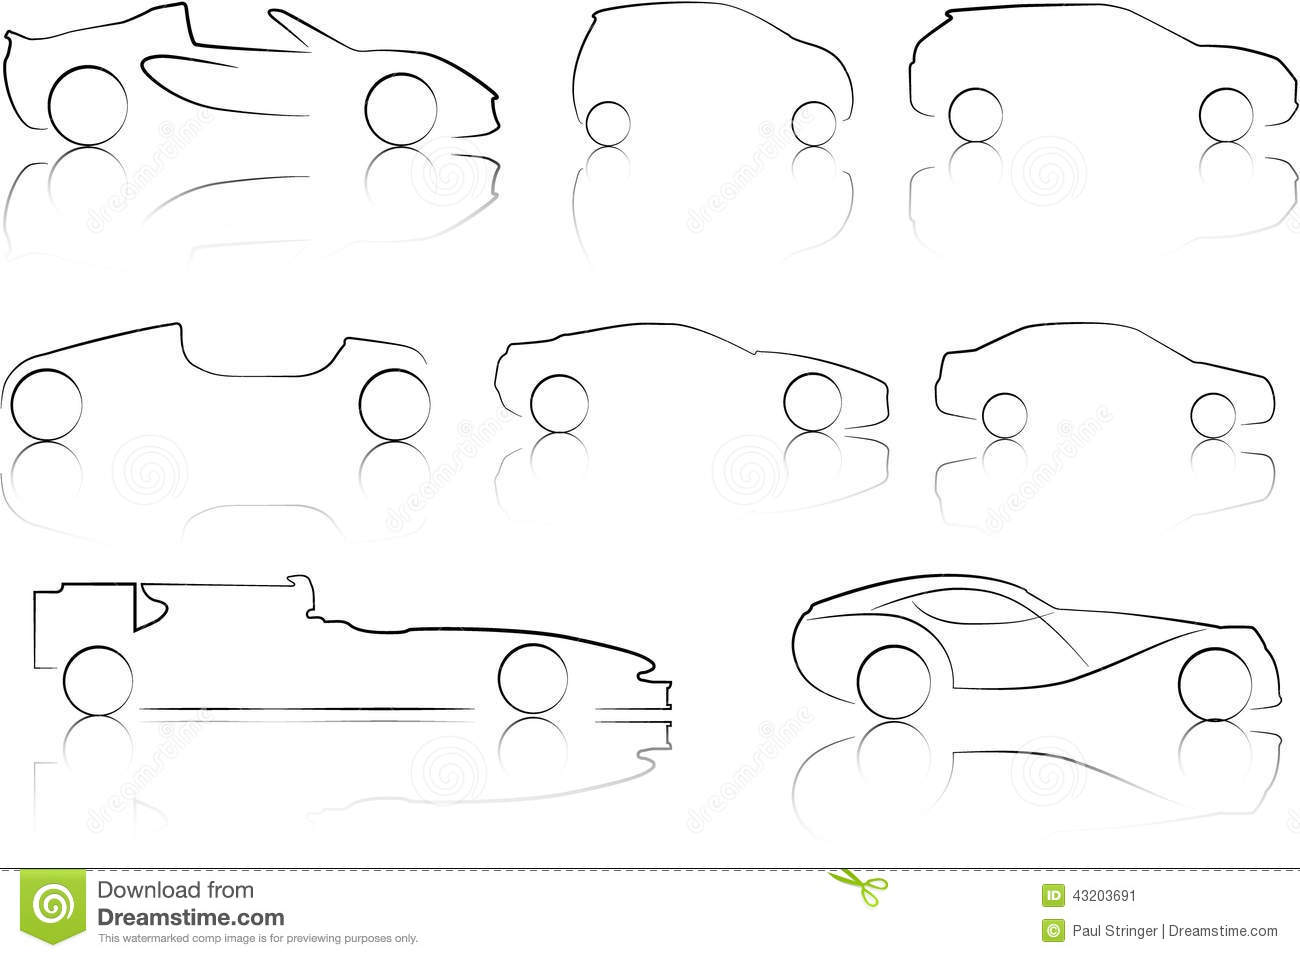 Download Illustration Av översikter Av Bilar Stock Illustrationer - Illustration av bild, limousine: 43203691